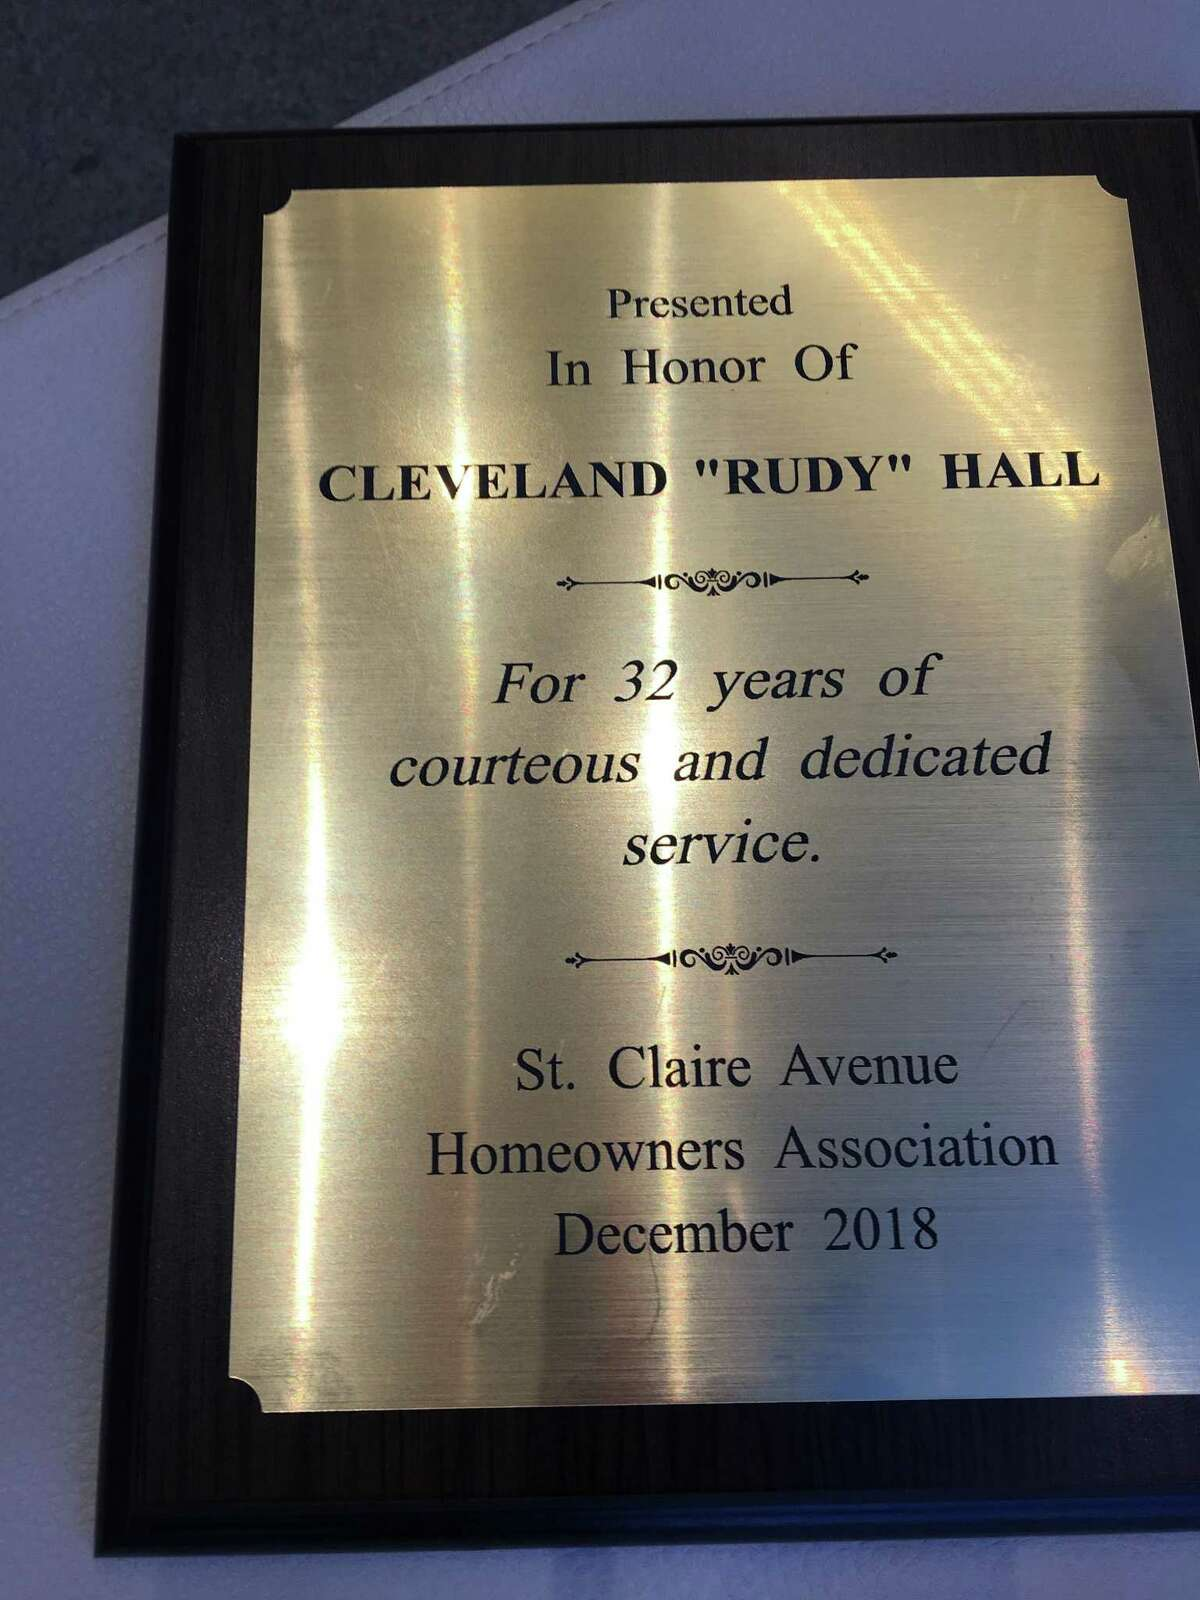 Cleveland 'Rudy' Hall is presented with a plaque commemorating his decades of service at the St. Claire Homeowners Association. He receives the award from Andy Reid the group's president, accompanied by Al Amato, after he was hospitalized for complications from diabetes.